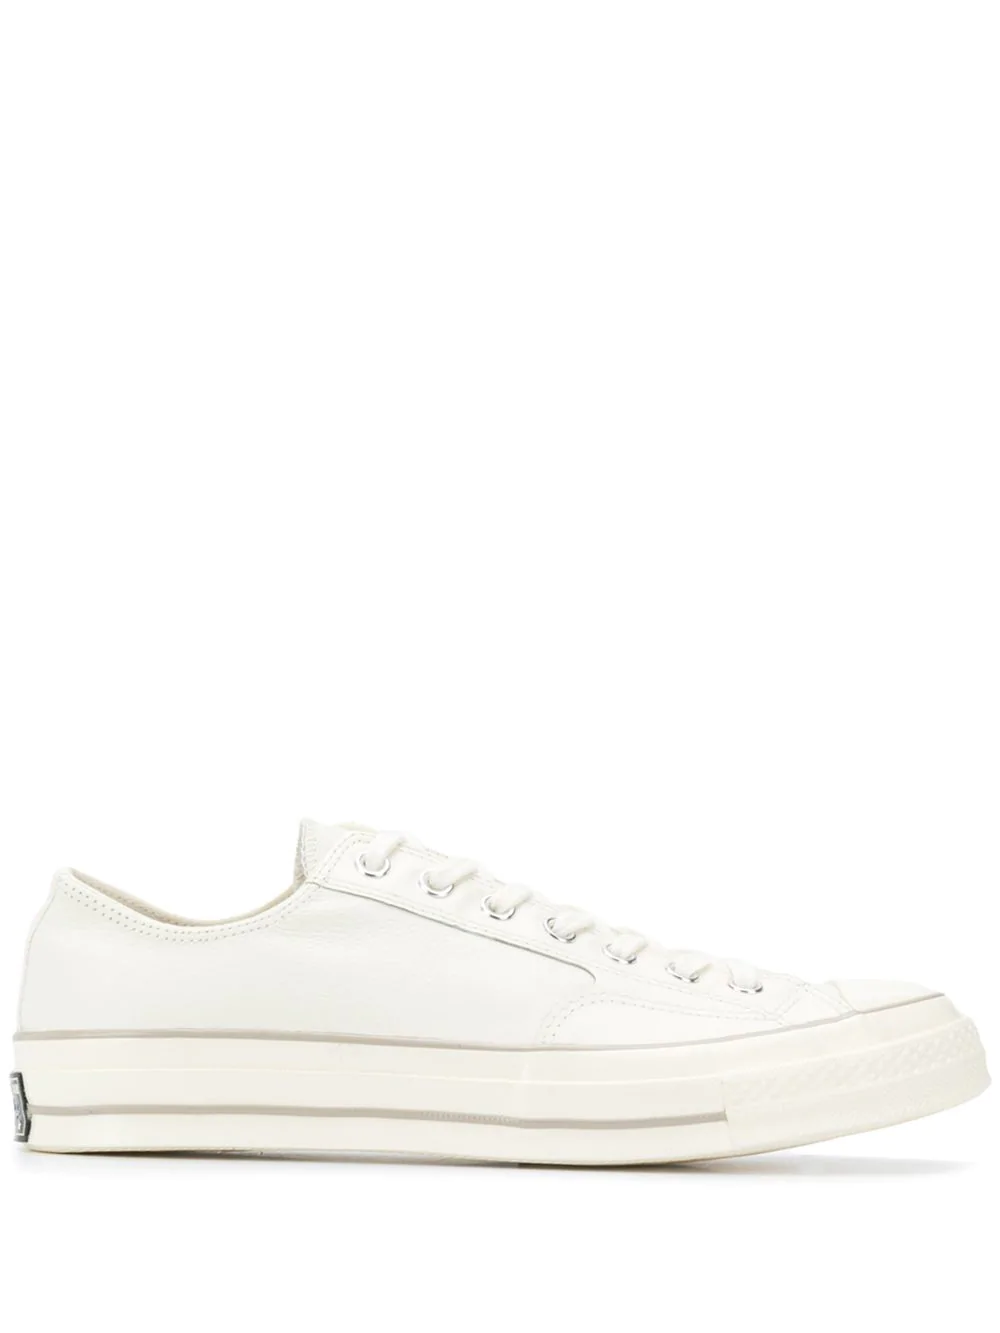 9f2874774dc5 Converse Chuck Taylor All Star 1970S Sneakers - White